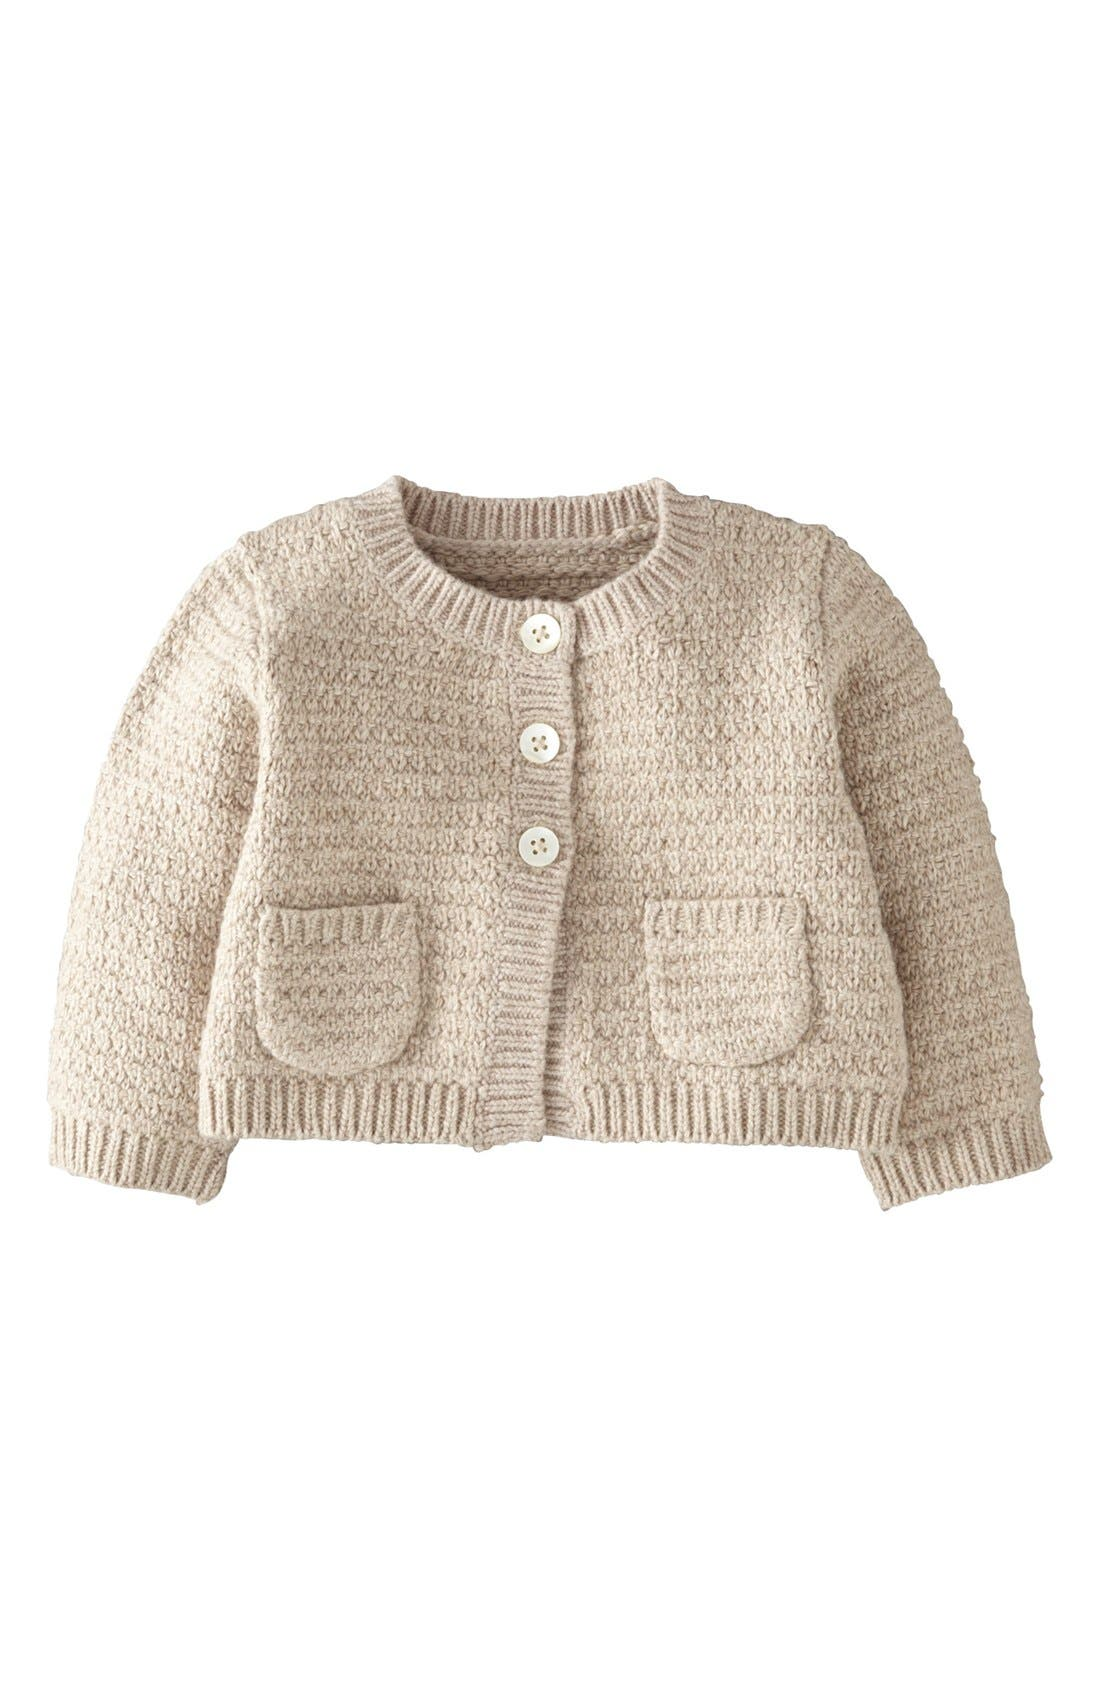 Main Image - Mini Boden Cardigan (Baby Girls)